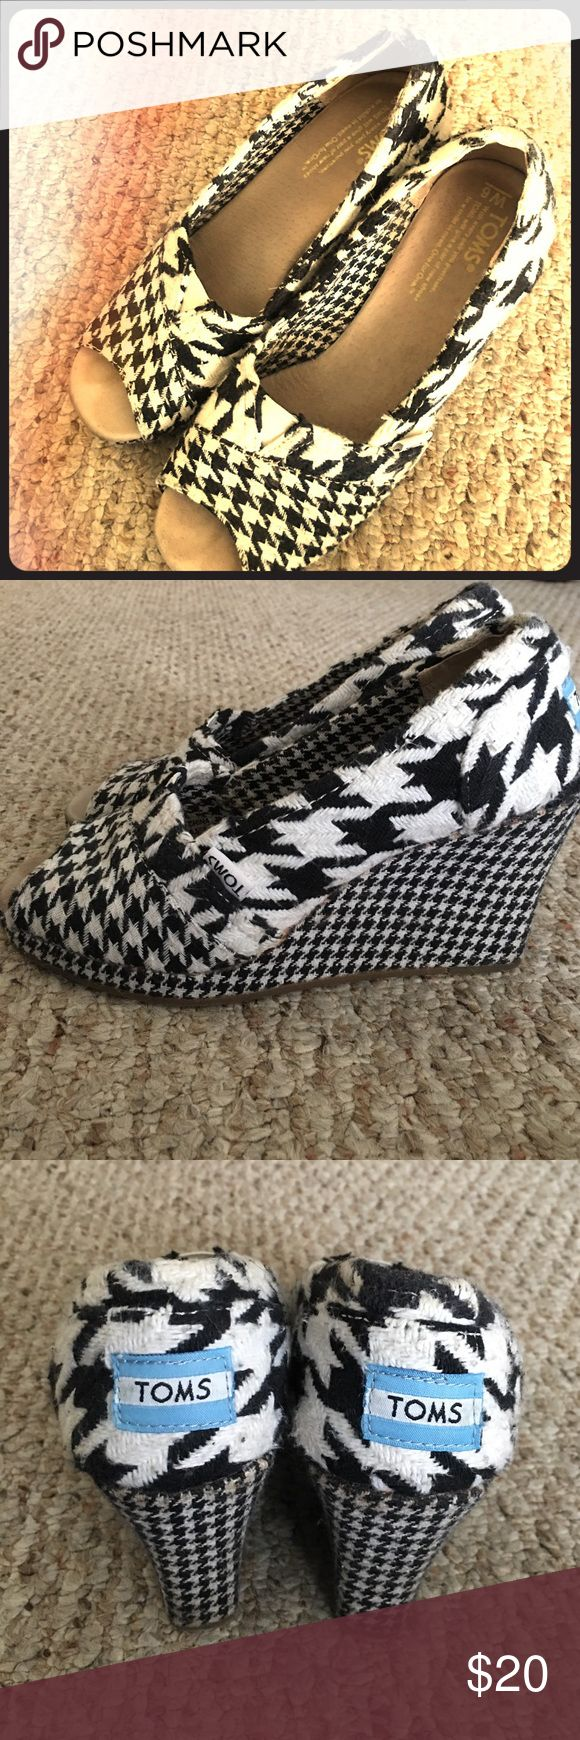 Toms black and white wedge shoes. Toms black and white wedge shoes. In preowned condition. Please see pictures TOMS Shoes Wedges